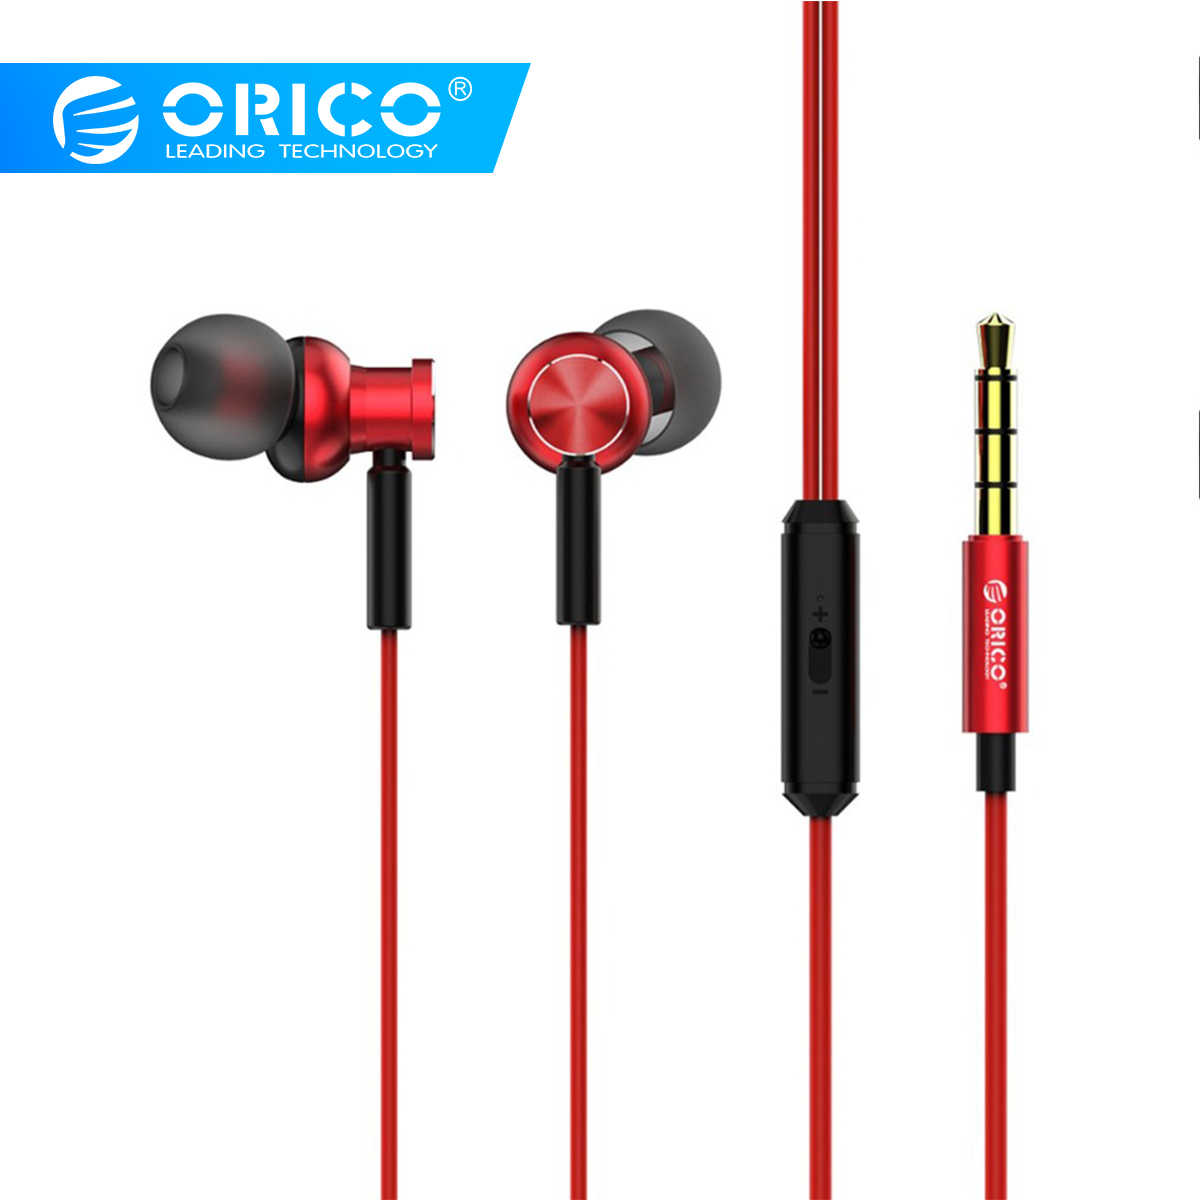 ORICO In-ear Earphone Bass Sound Sport Earphone Music Earbuds Stereo Gaming Earphone for Phone Xiaomi with Microphone